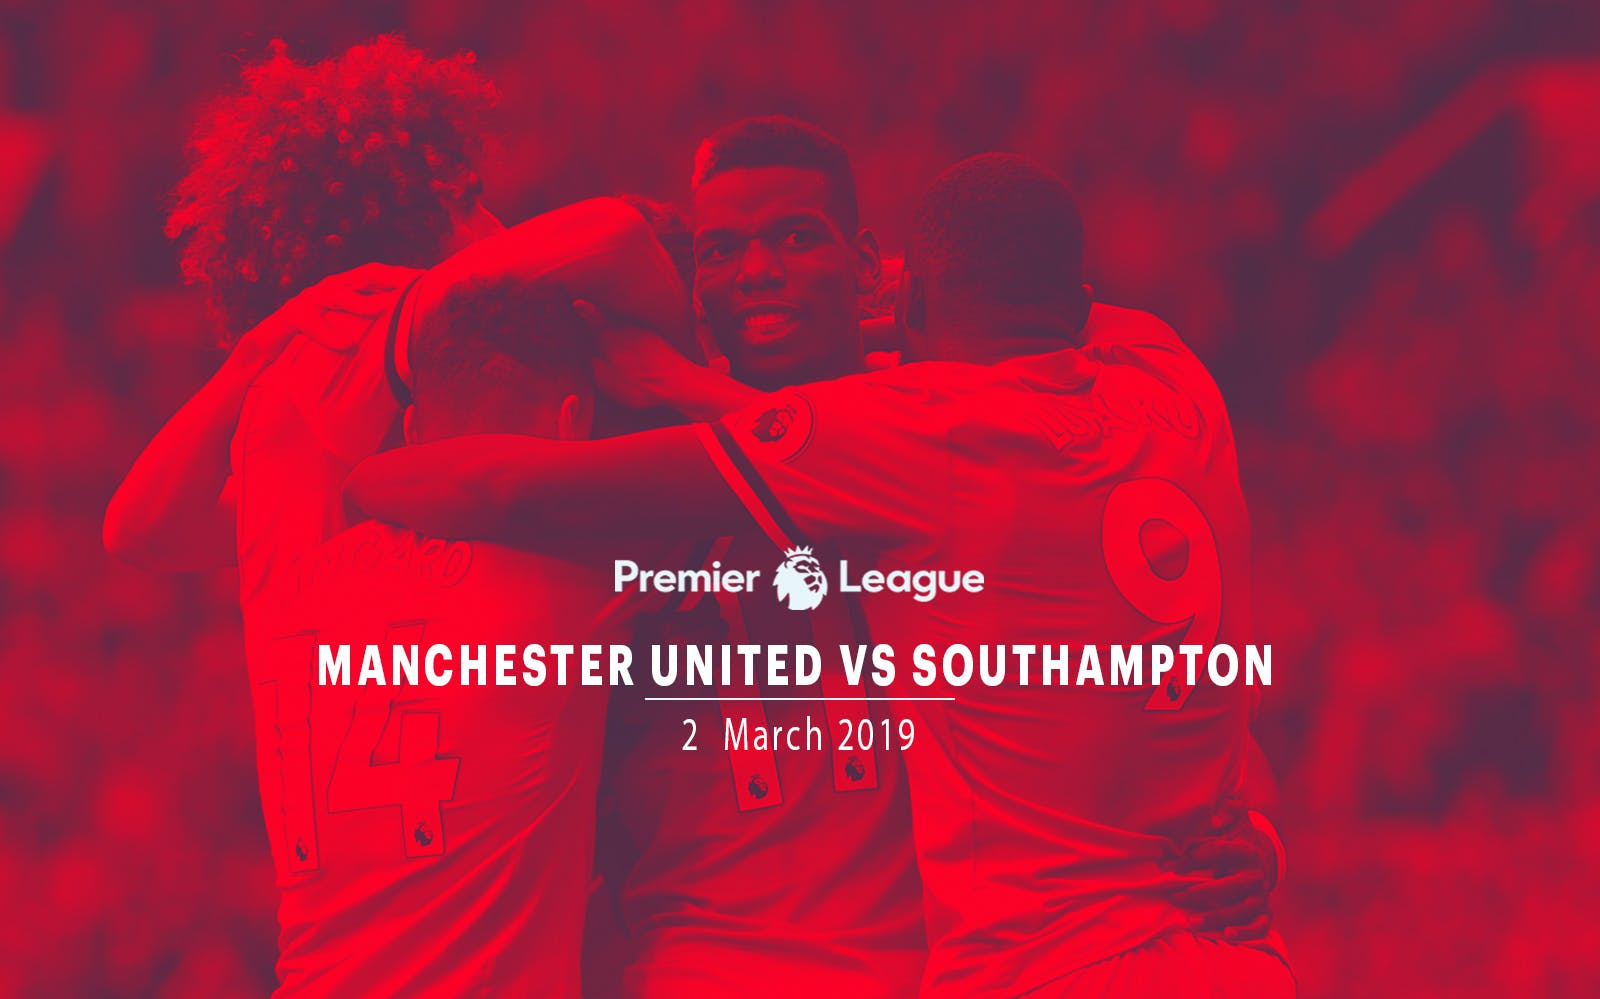 manchester united vs southampton-2 mar 2019-1